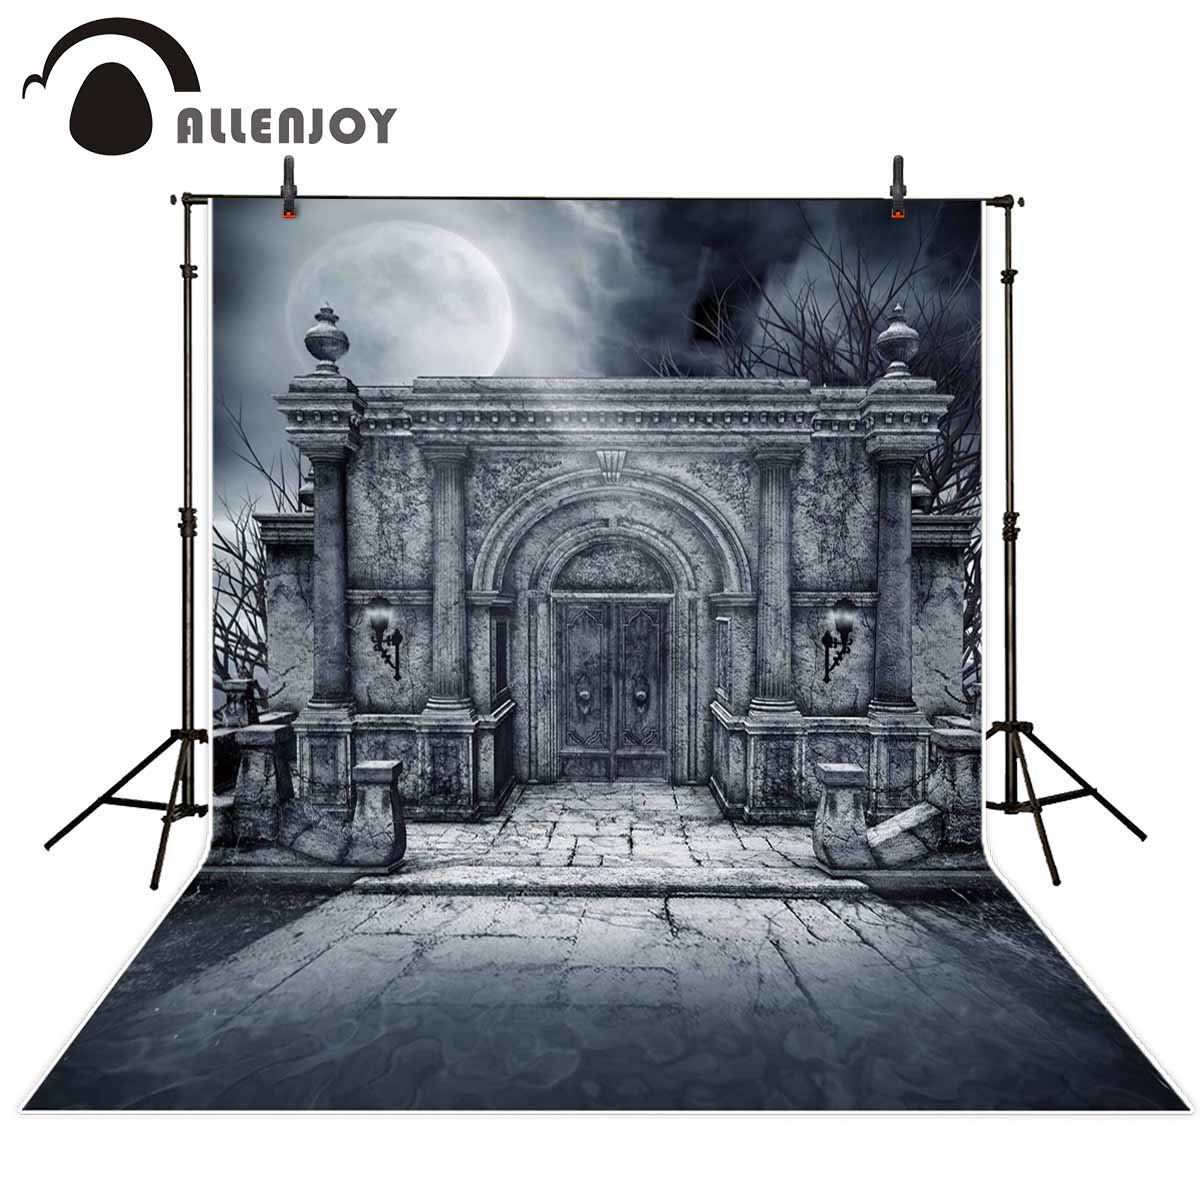 Allenjoy Halloween Party Supplies Ancient building night moon Photographic backdrop banner festival photo background photophone